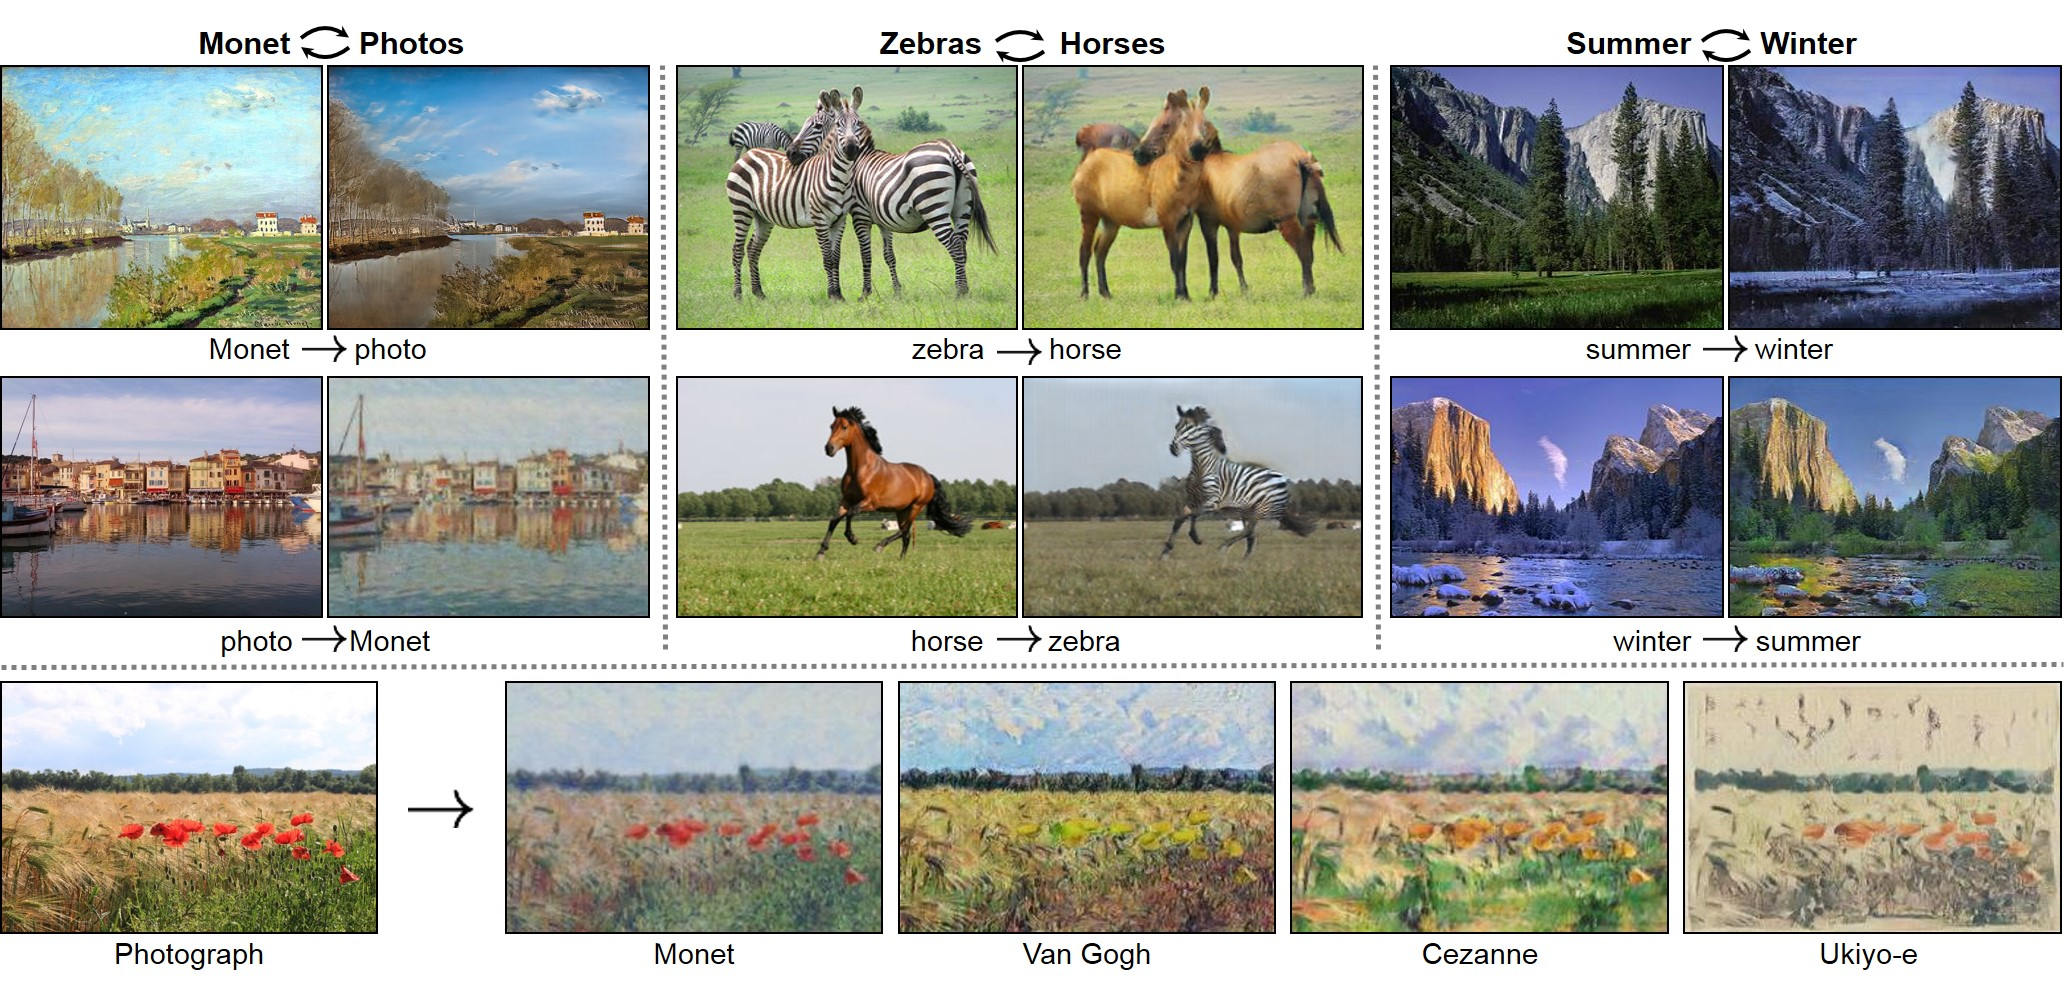 Examples of how cycleGAN morphs photos from one style into another, including turning a photo into a Monet, a horse into a zebra, and a summer landscape into a winter landscape.